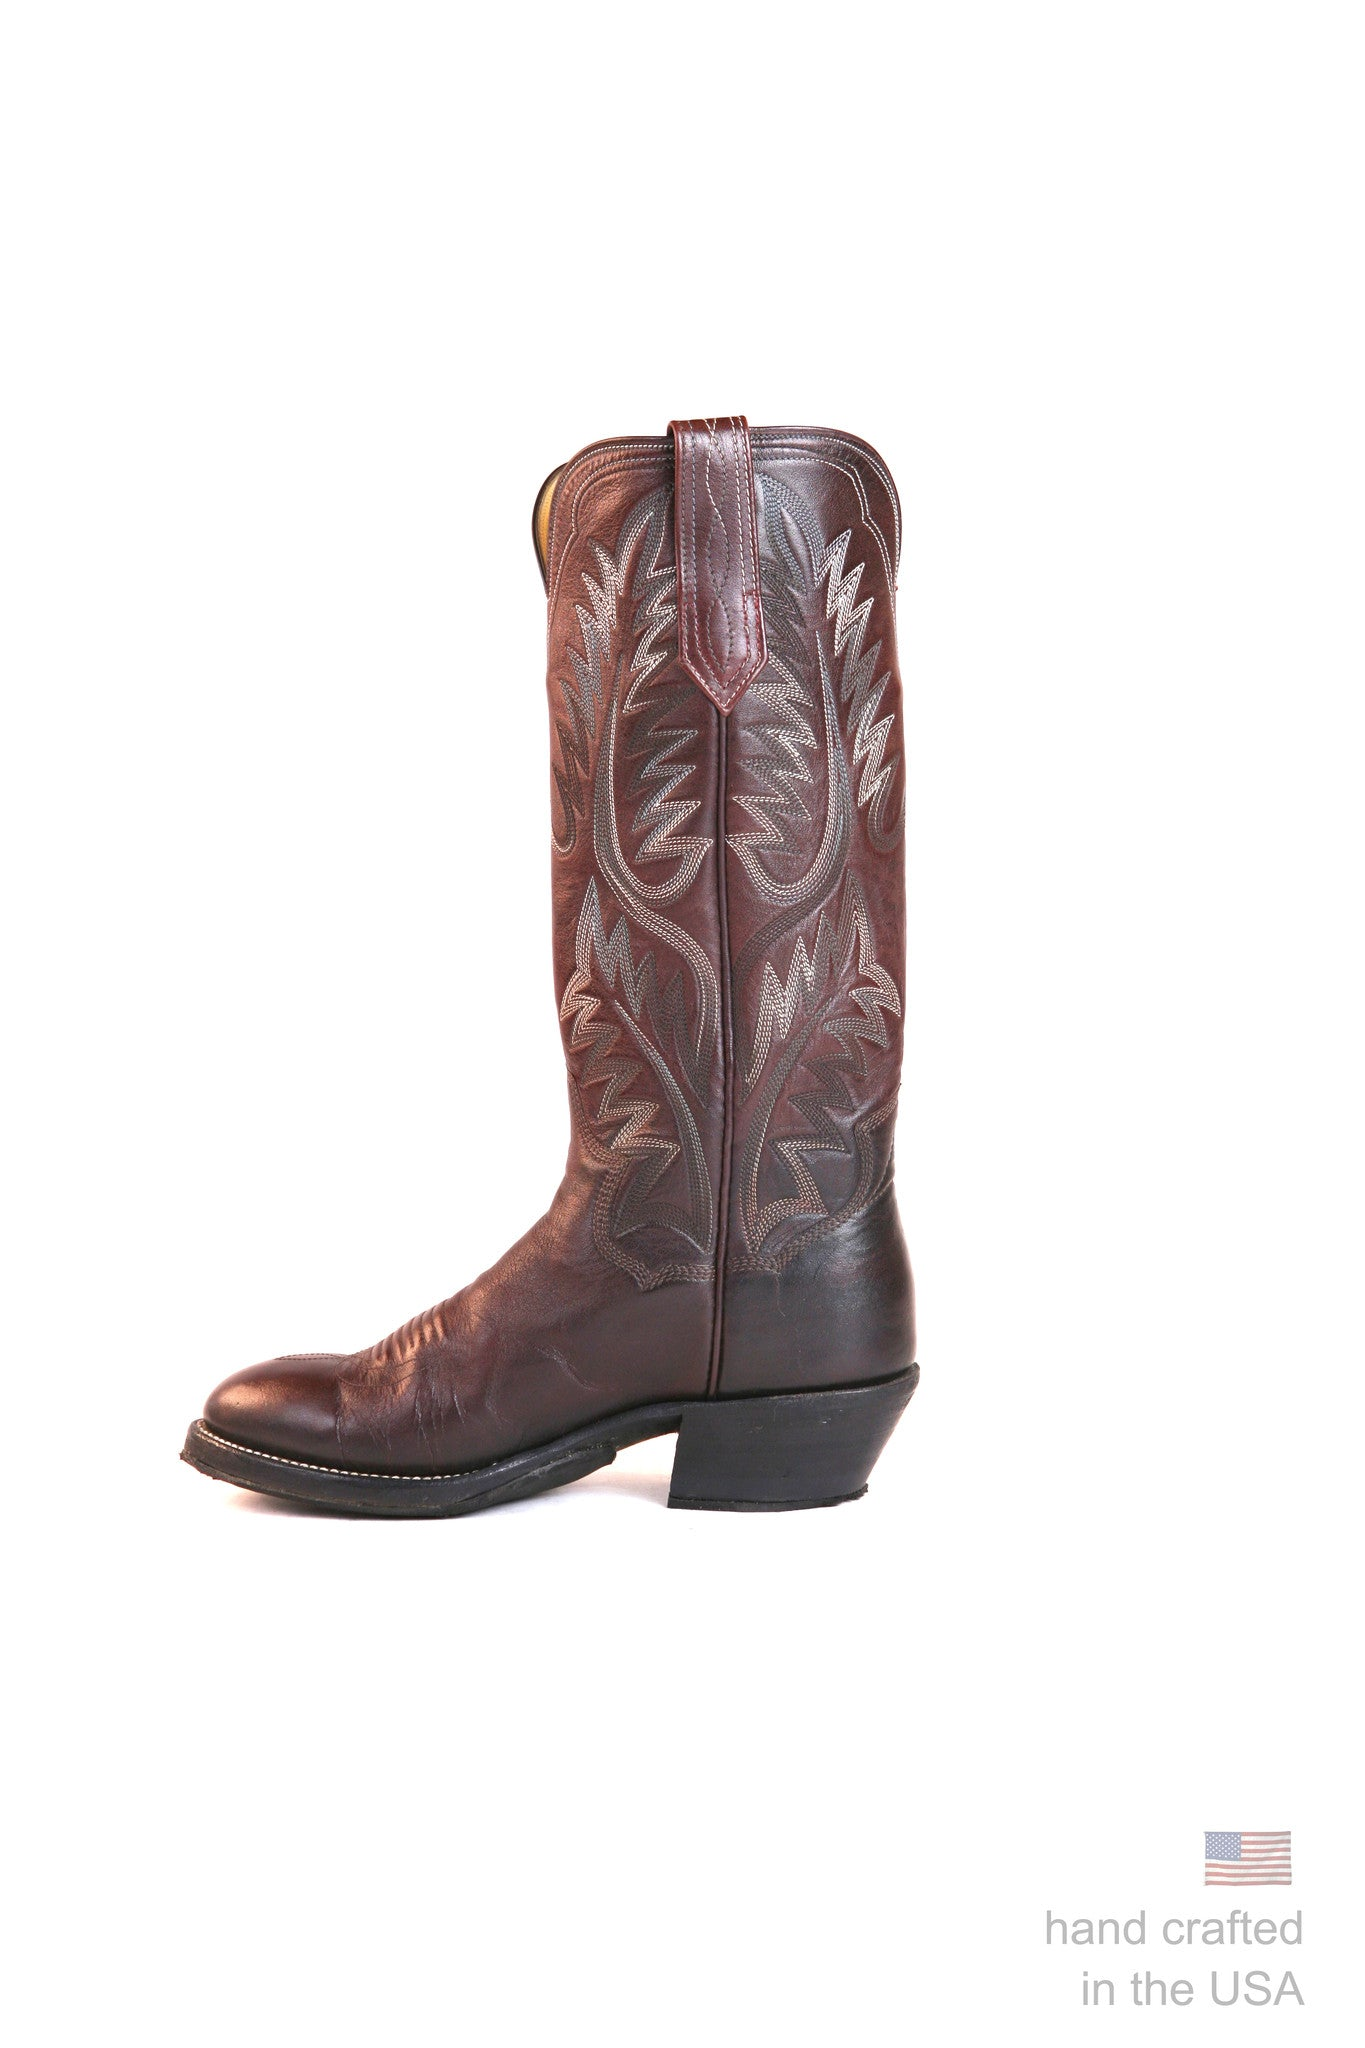 Singles: Boot 0033: Size 7B